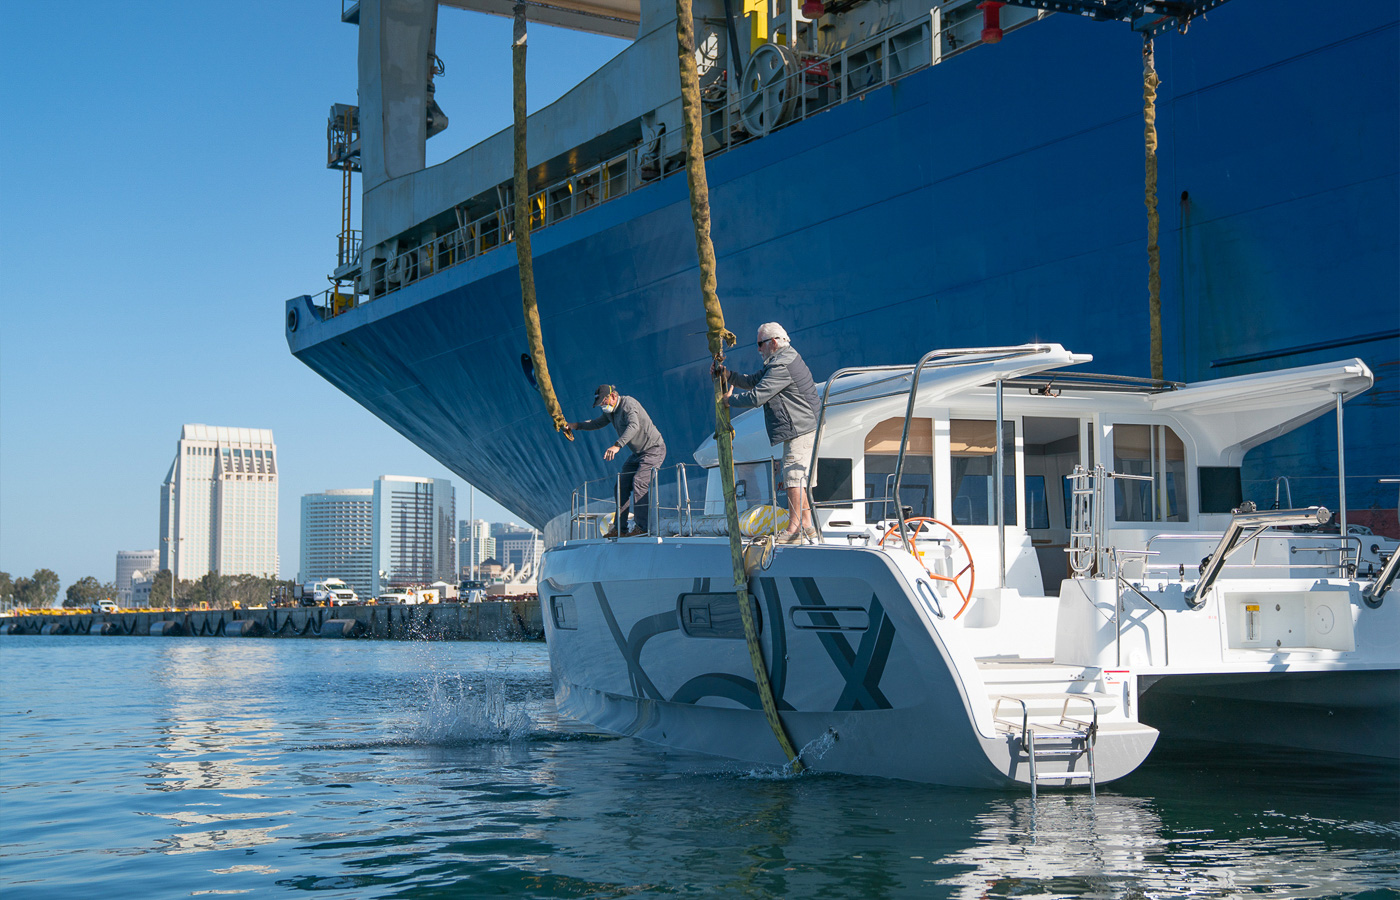 Excess Catamaran Delivered To San Diego [New XCS12 For Sale]